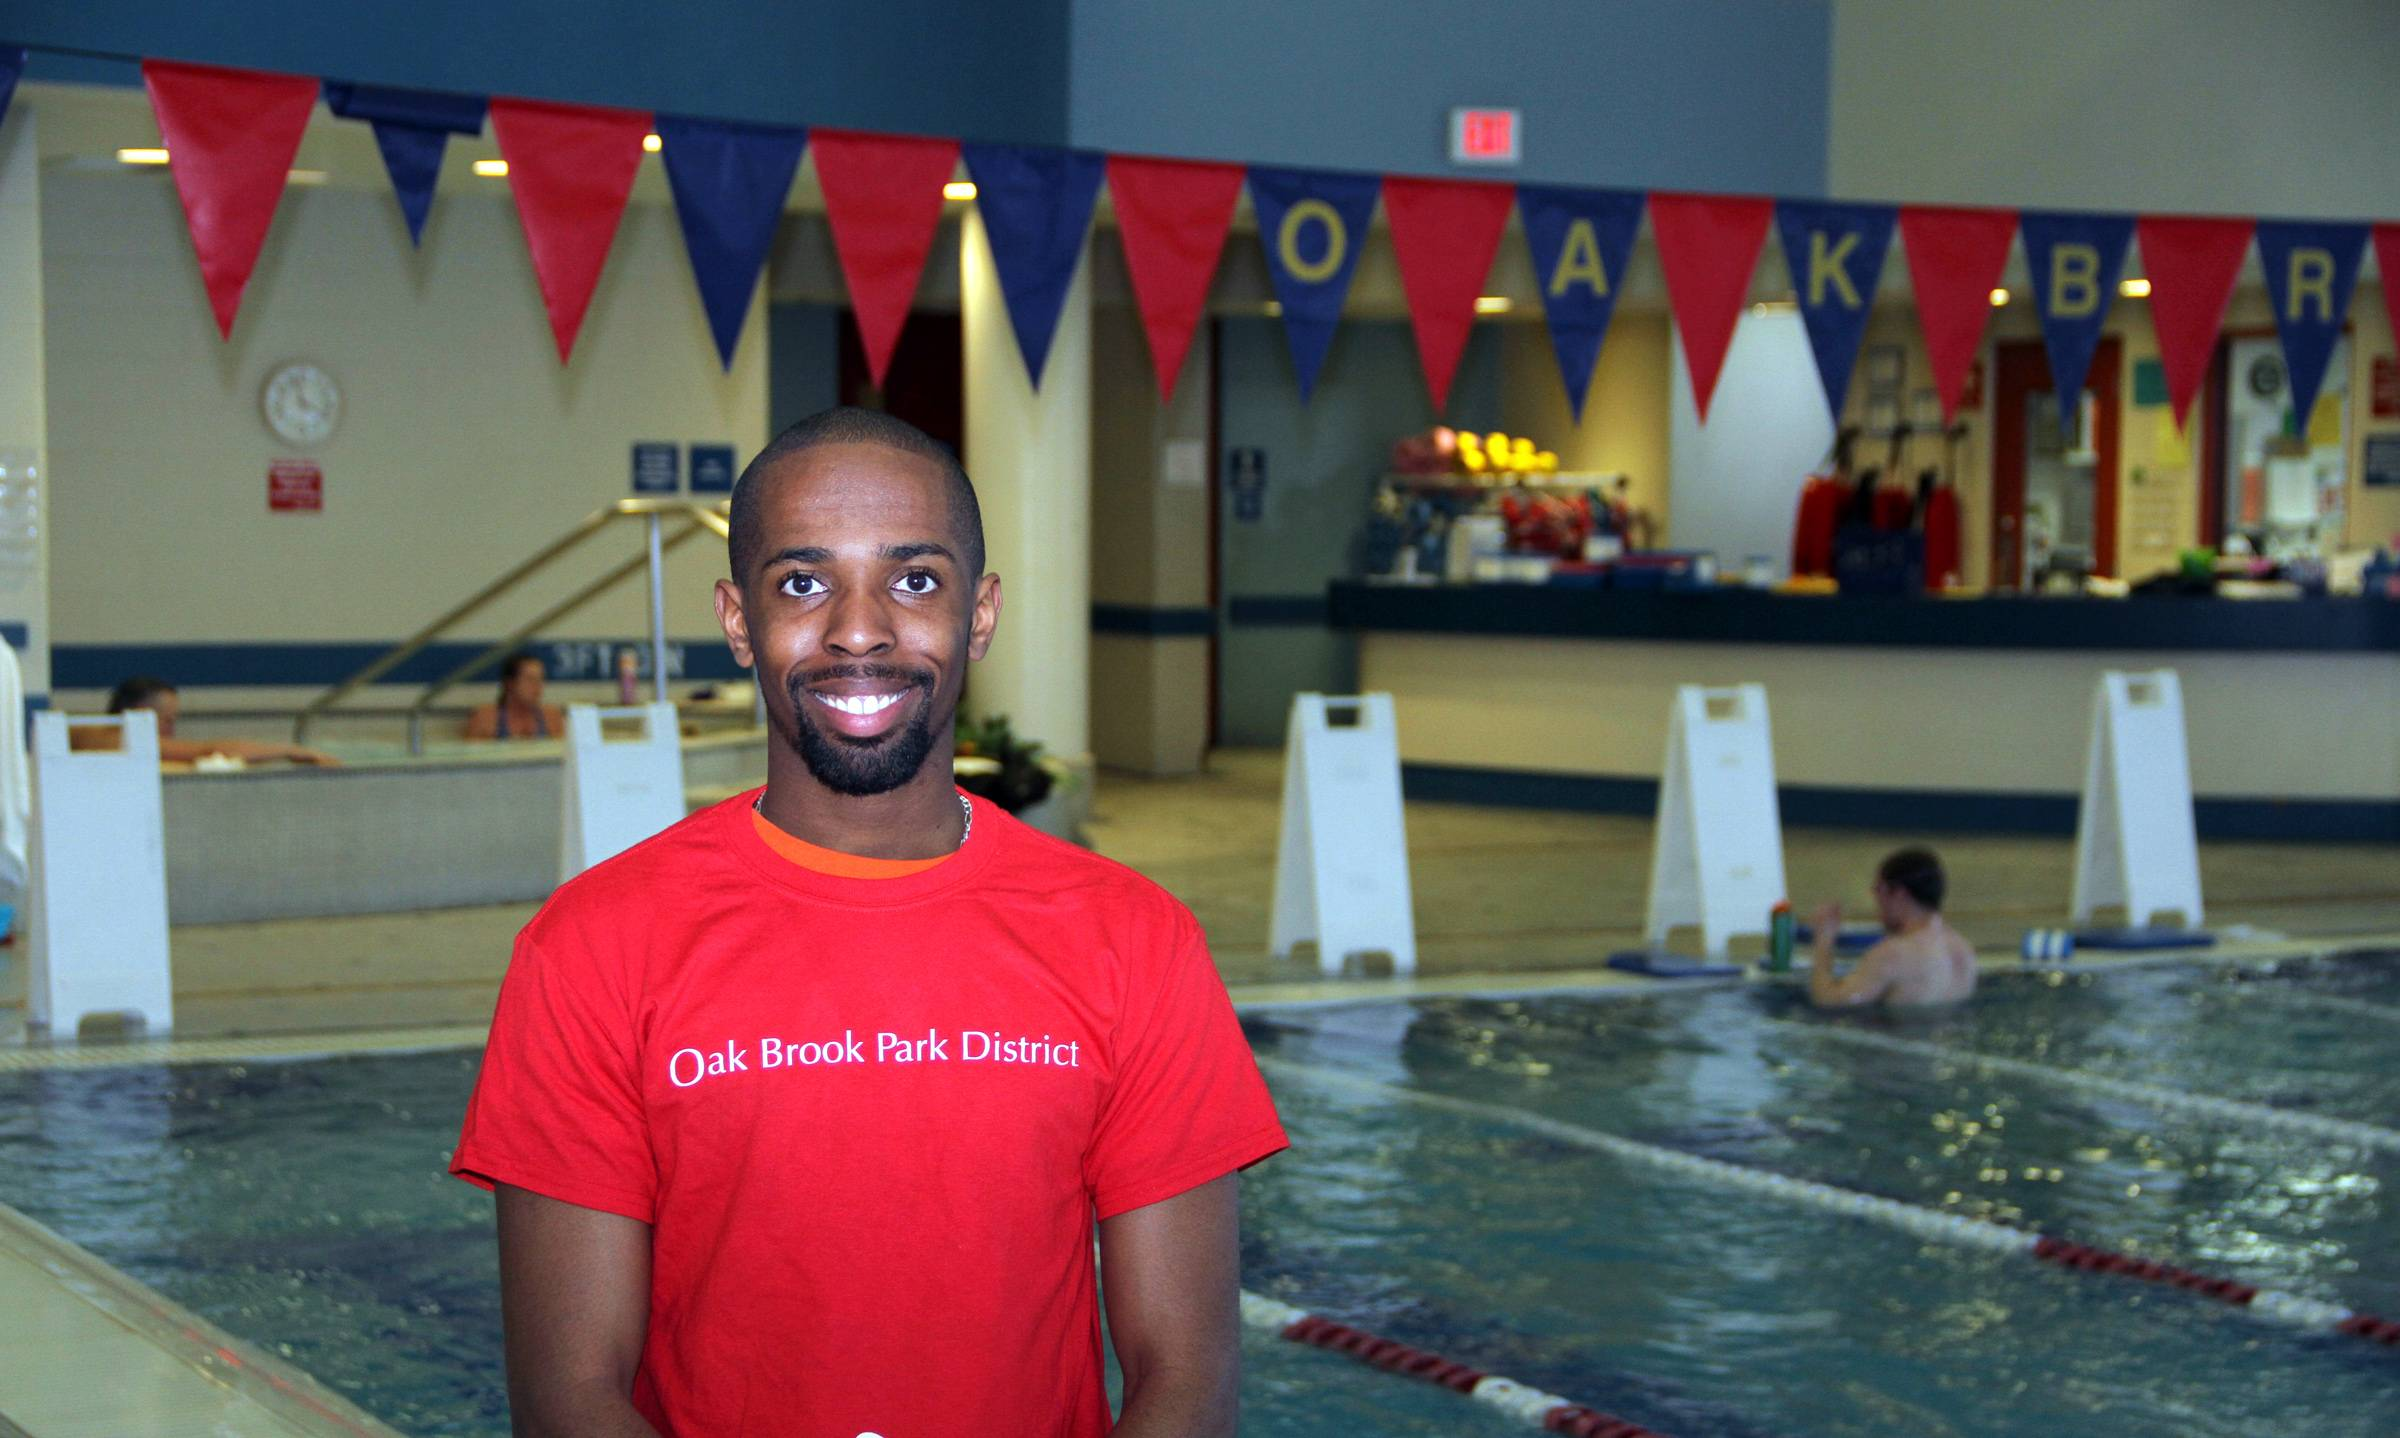 One in One Thousand:  Darius Melton, 23, of Chicago and a lifeguard at the Oak Brook Park District Family Aquatic Center, was the recent recipient of the National Golden Guard Award from Ellis and Associates, Inc. Only one in one thousand lifeguards across the nation will ever receive this award. Greg Wooley, Oak Brook Park District